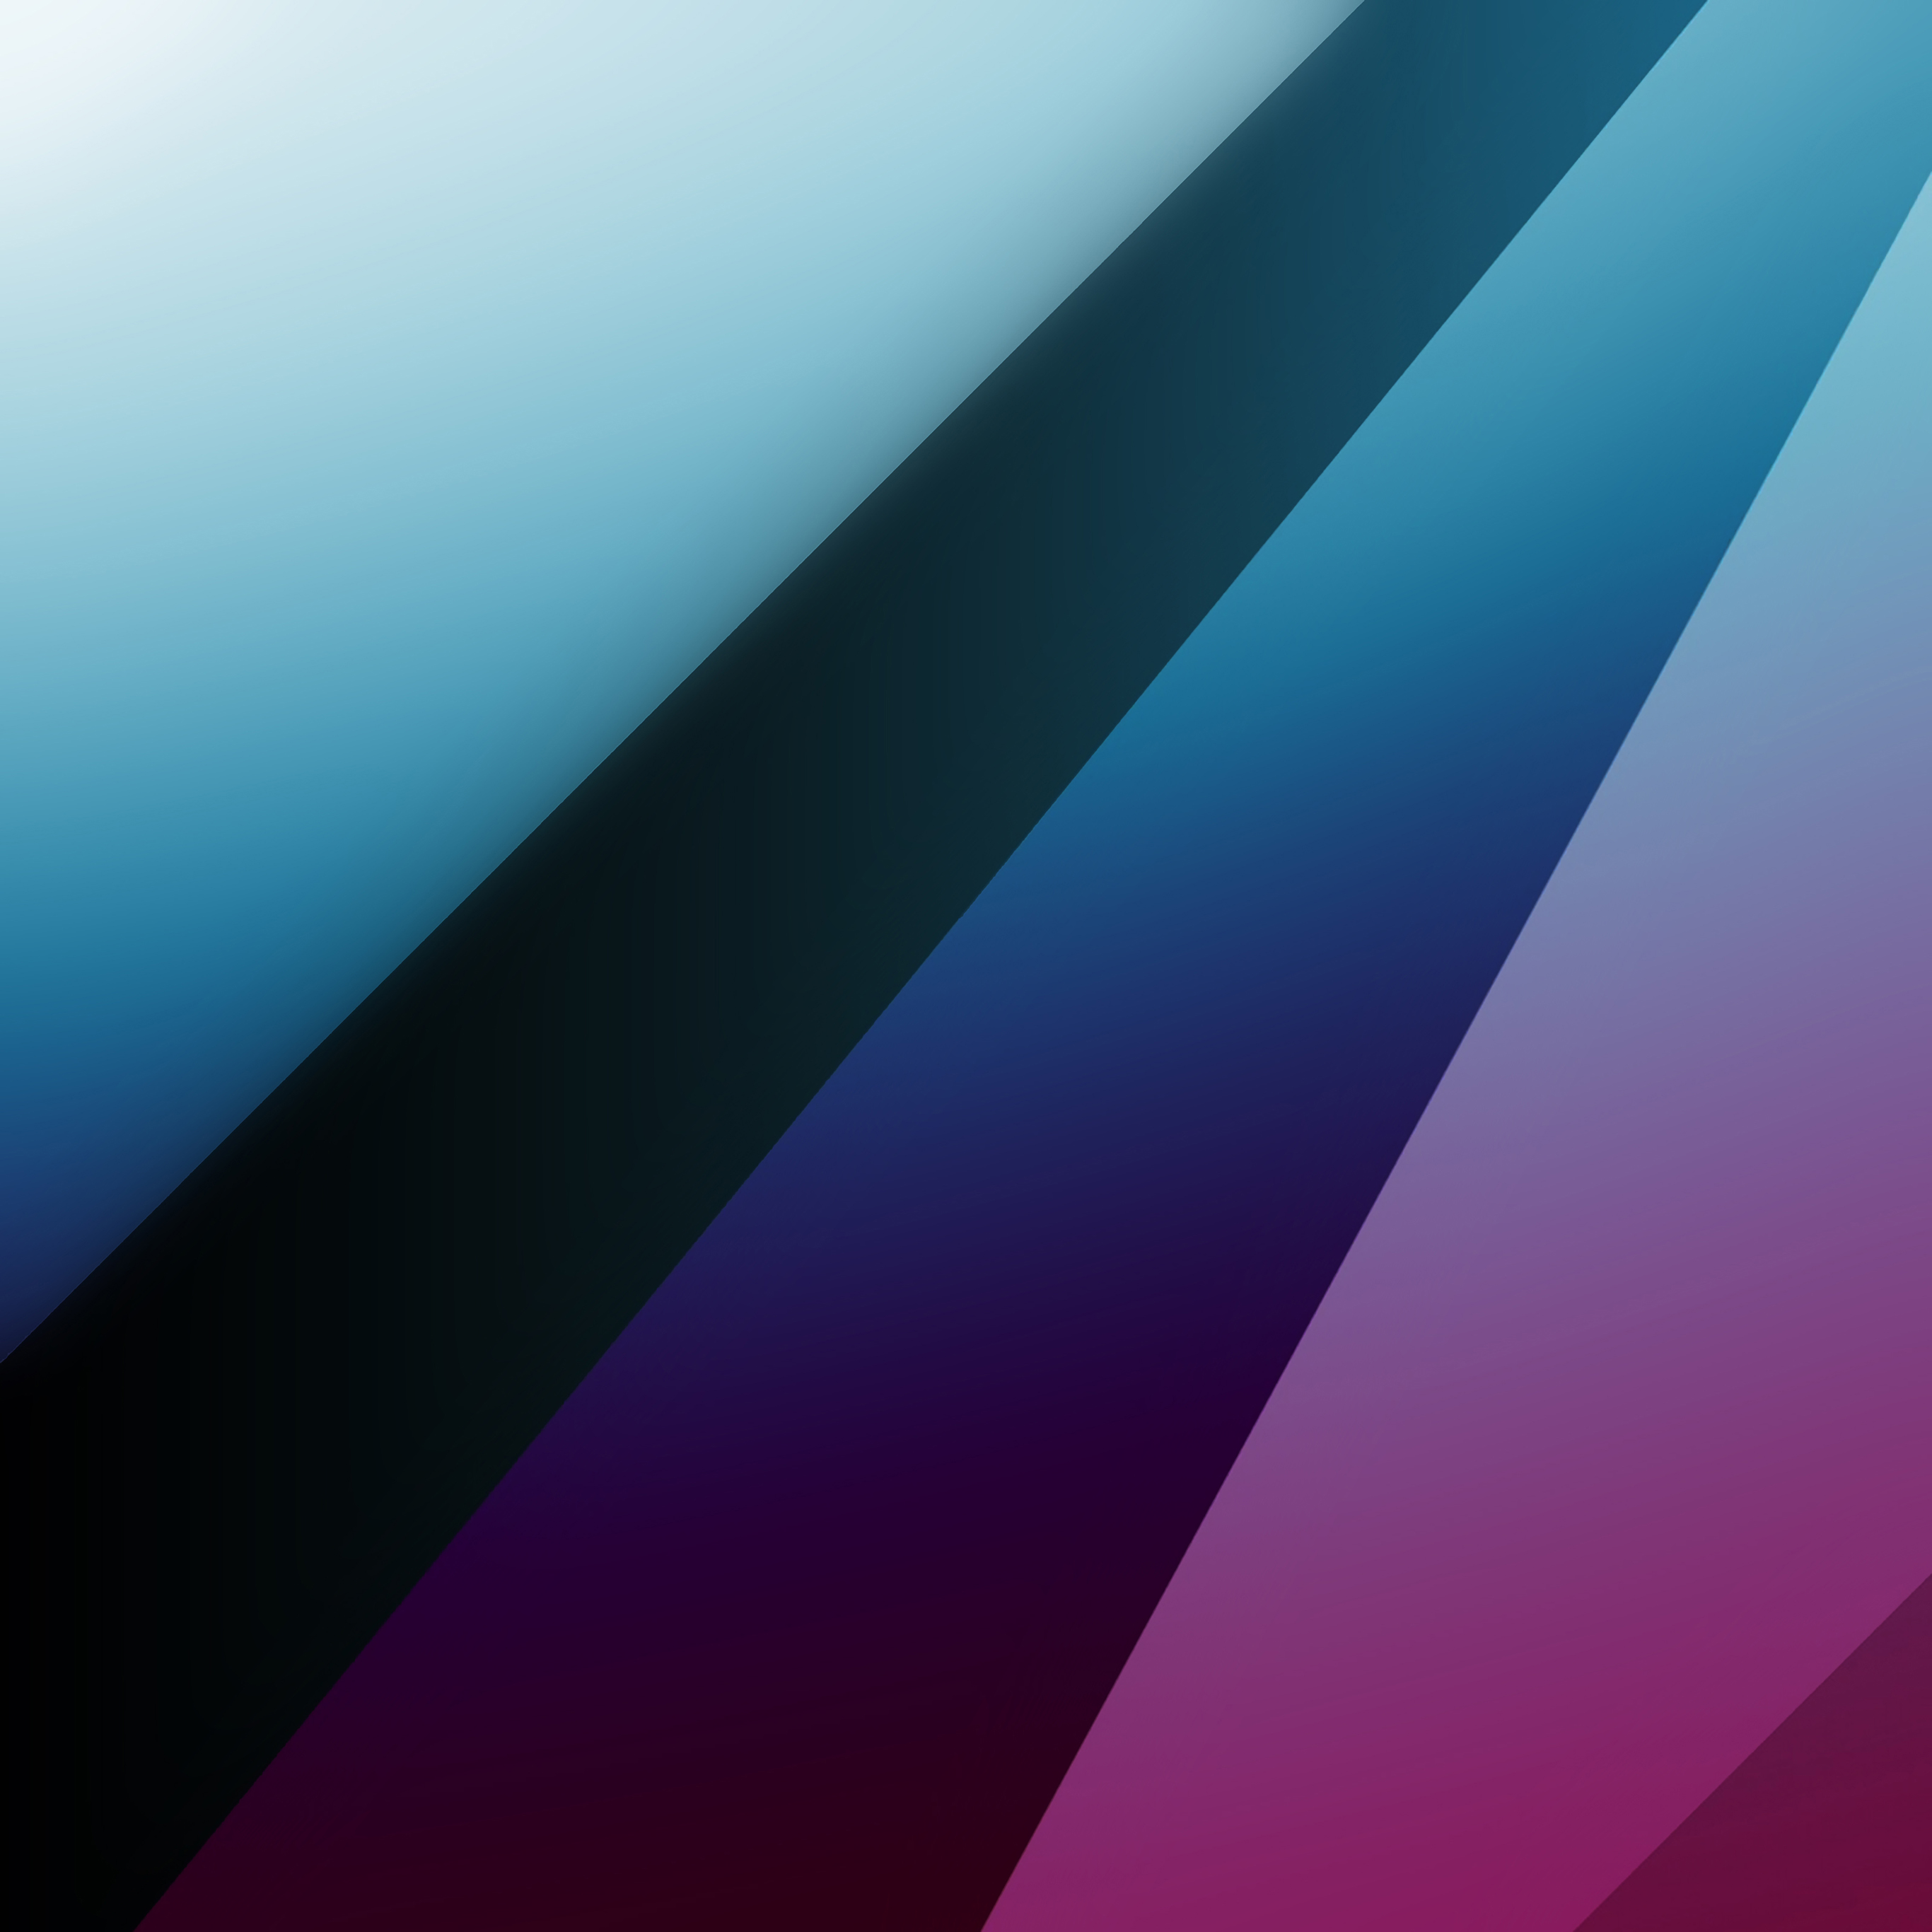 Ve66-abstract-vector-art-simple-line-patterns